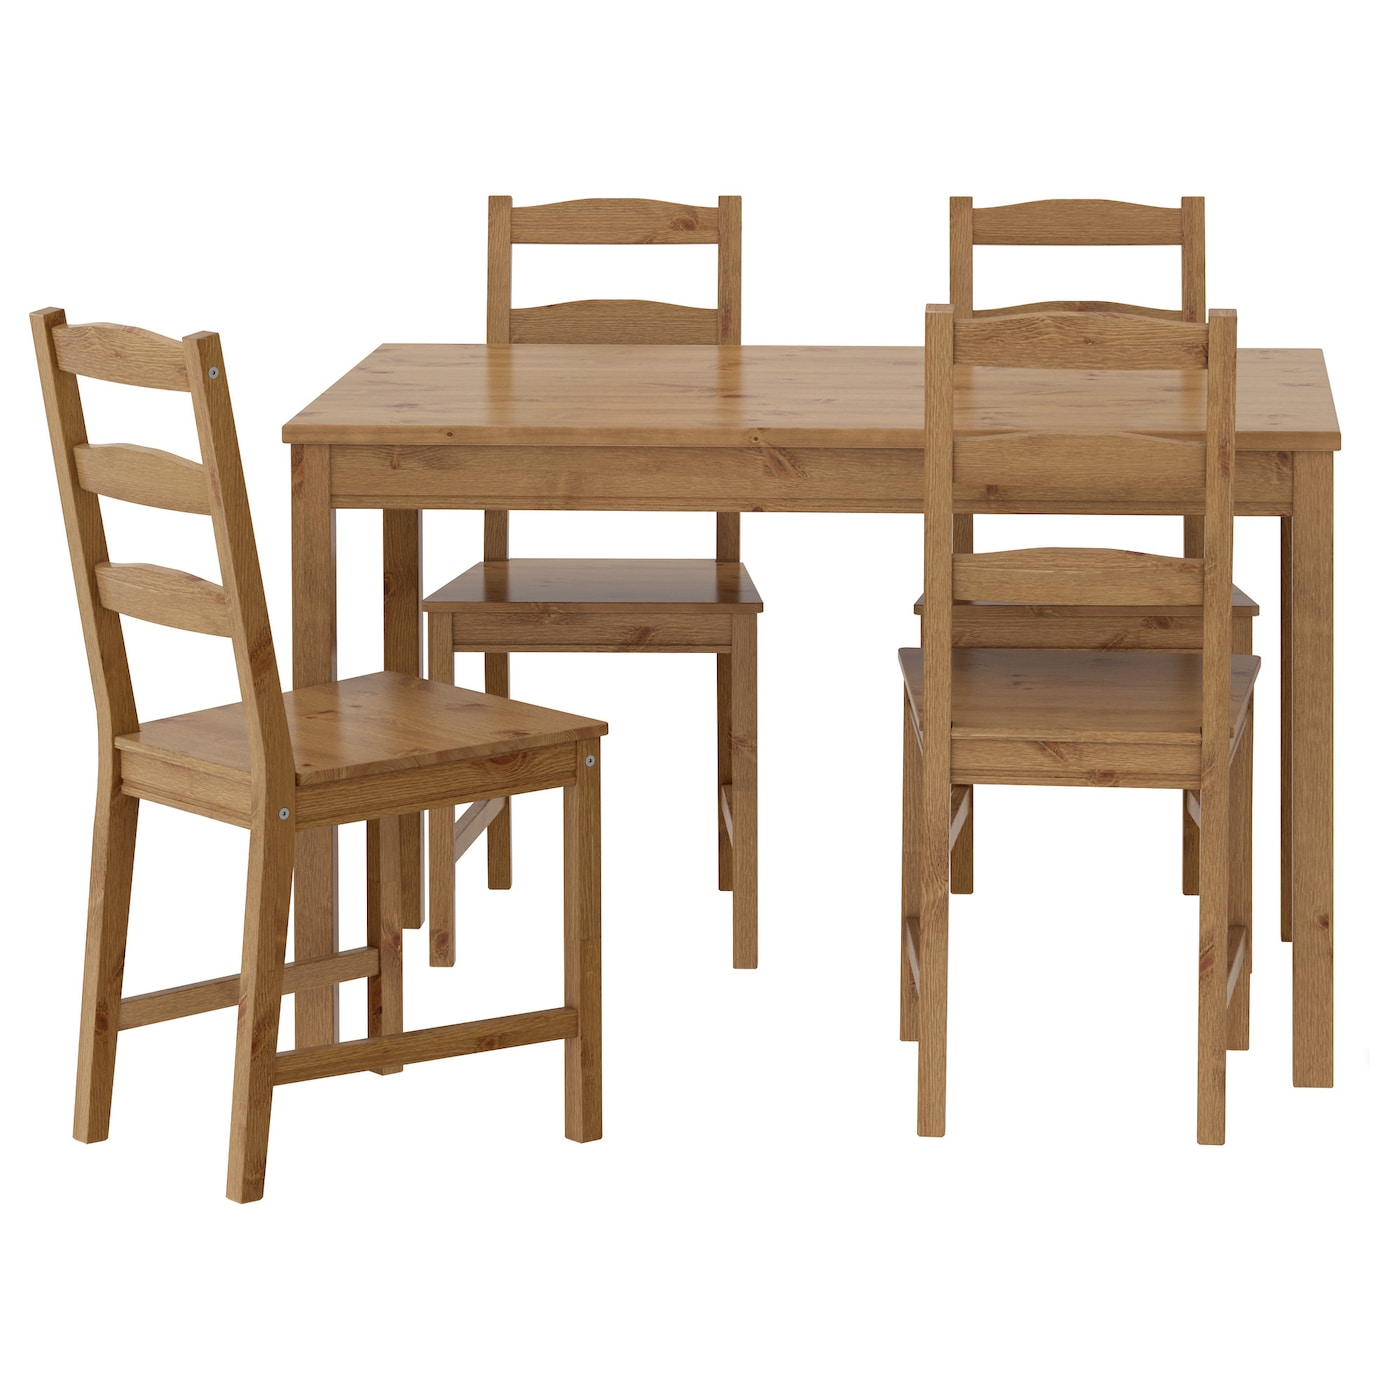 table and chairs. IKEA JOKKMOKK Table And 4 Chairs Solid Pine; A Natural Material That Ages Beautifully.